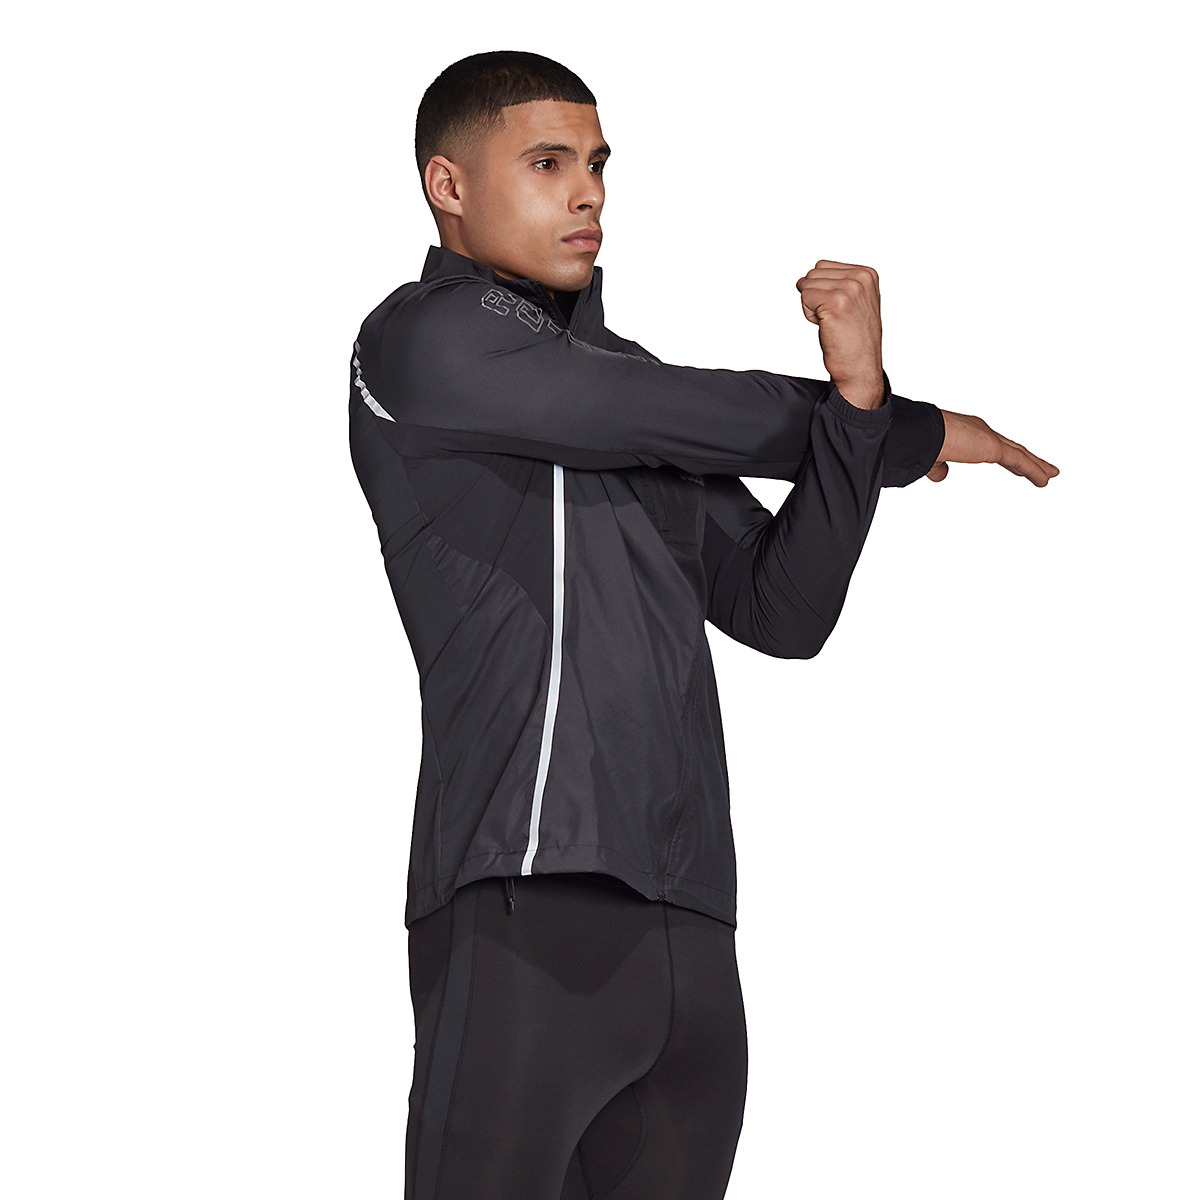 Men's Adidas Runner Night Ready Jacket - Color: Black - Size: S, Black, large, image 4